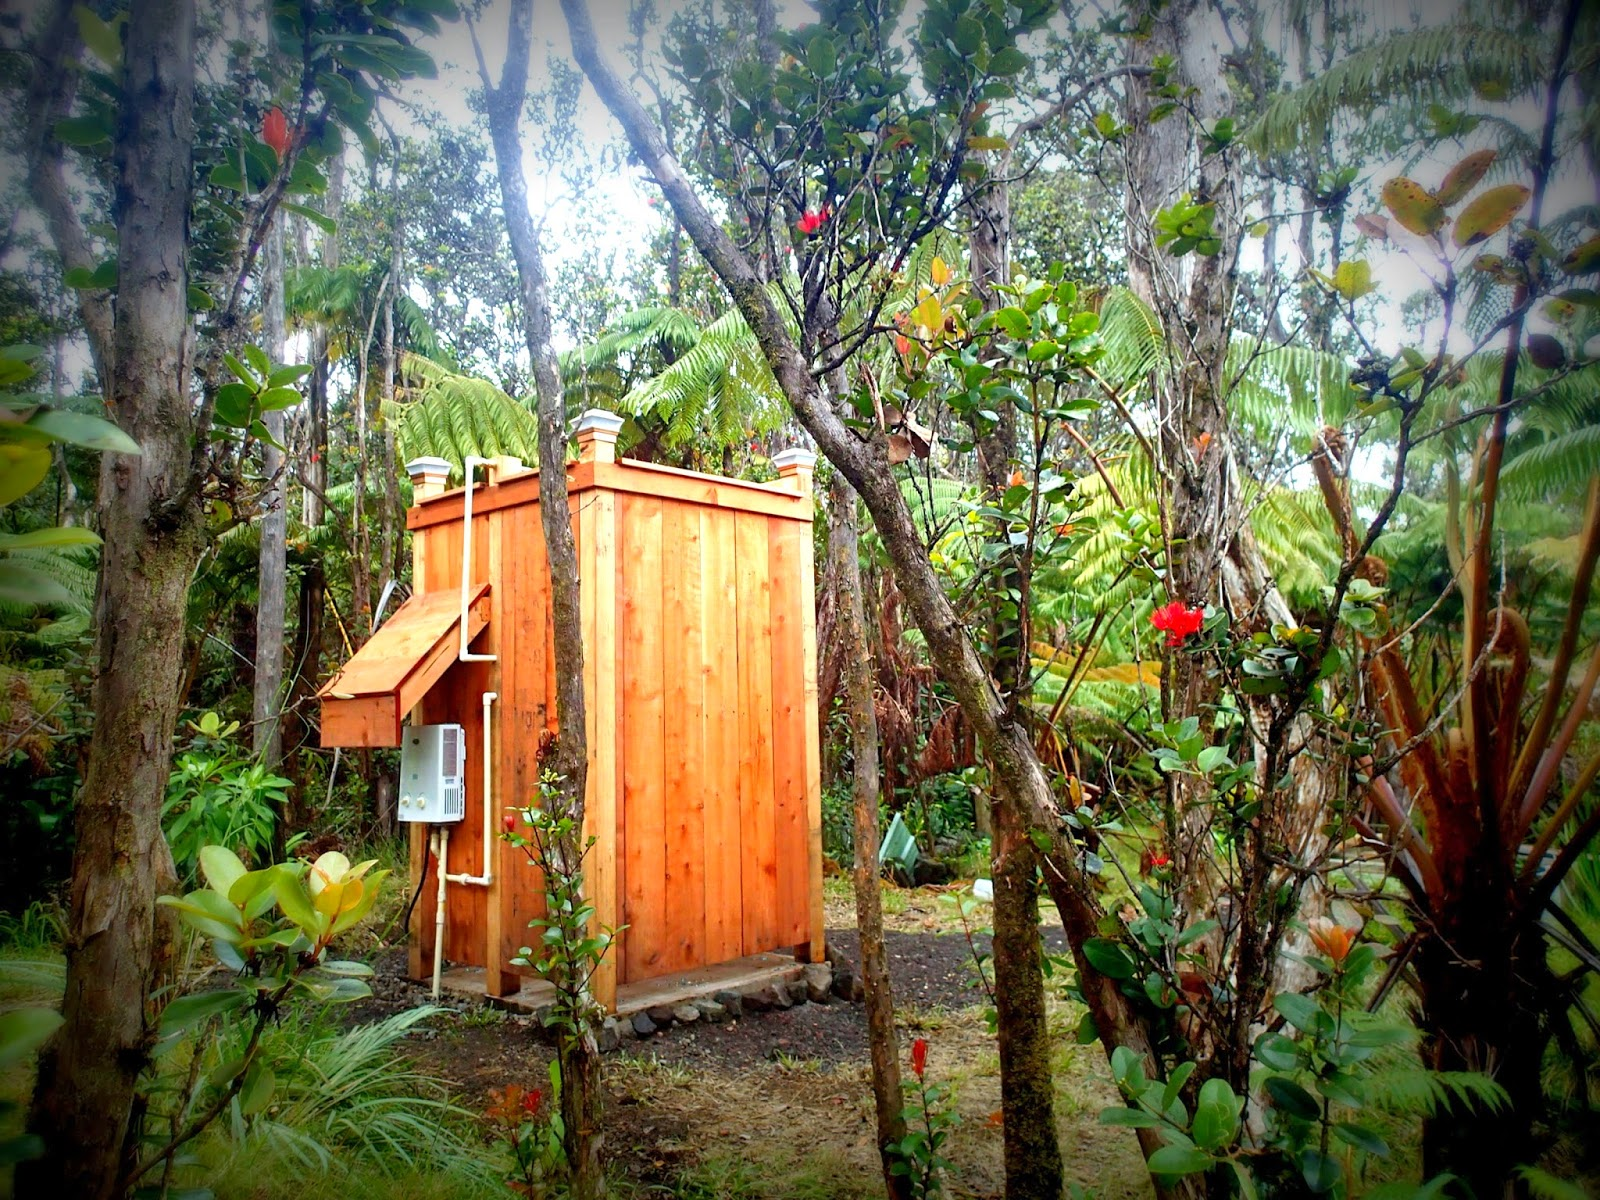 The Beauty Of Outdoor Shower With Hot Water